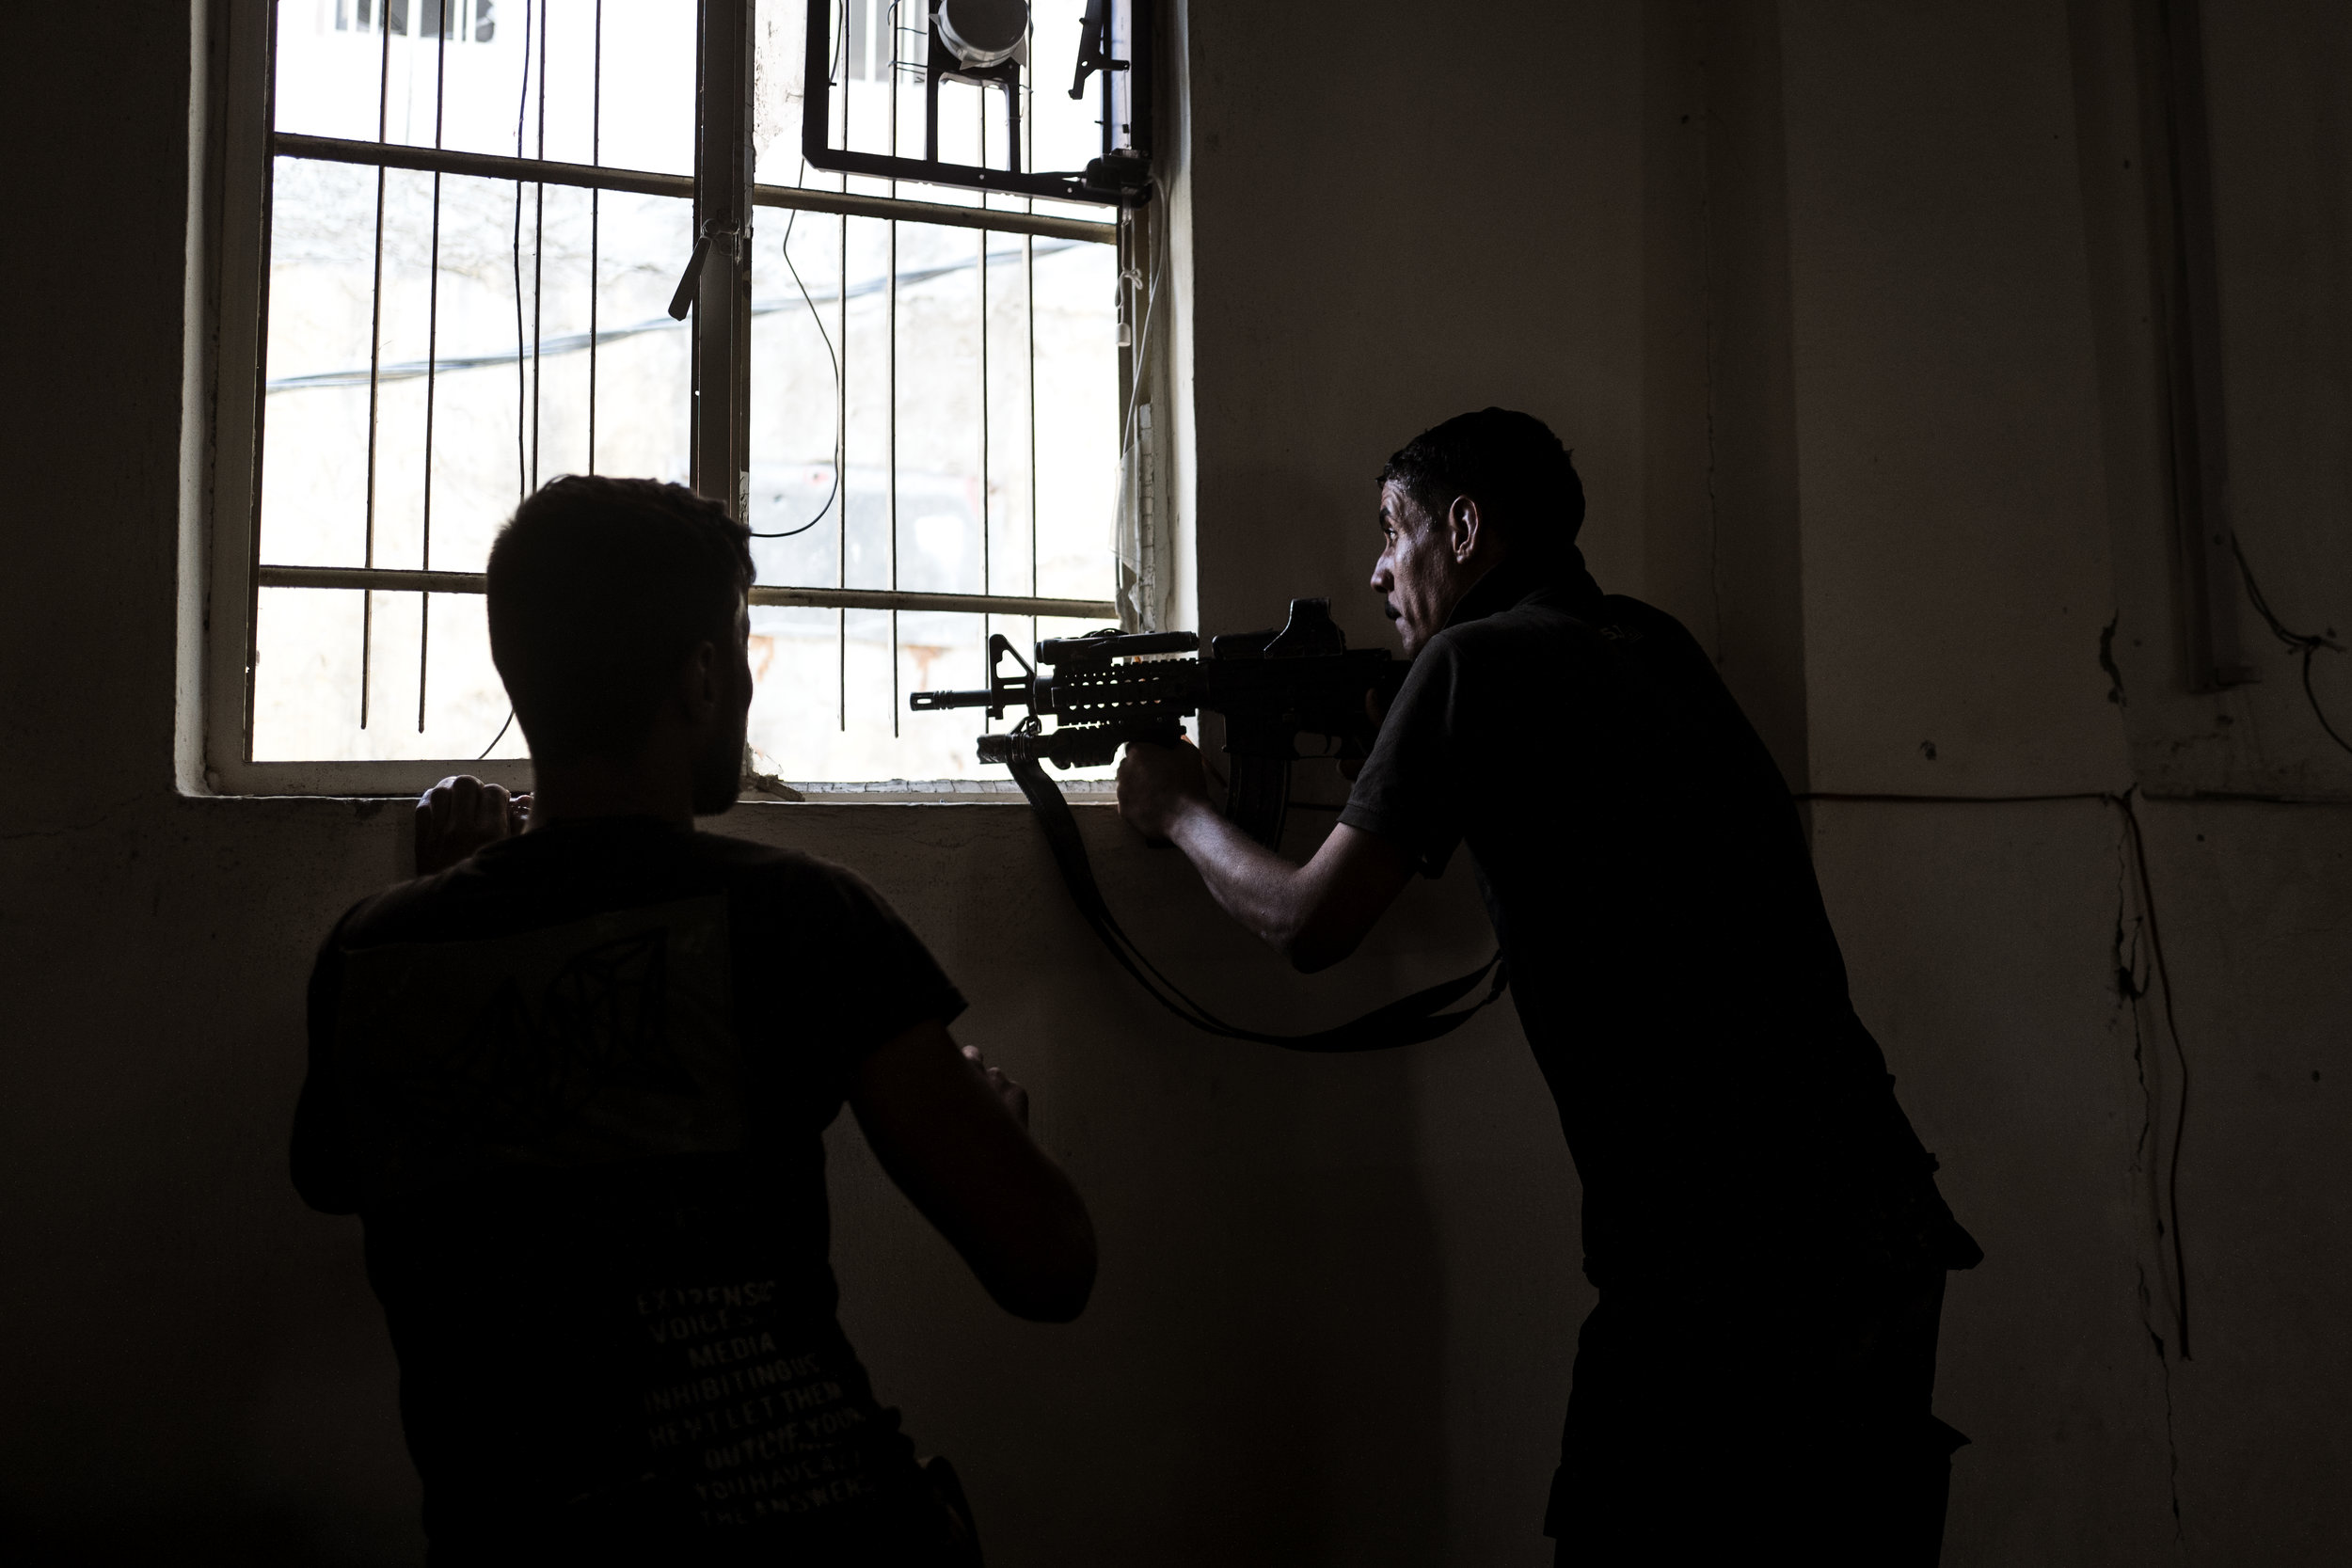 20 meters. So short is the distance between Muhamed Yasin and the house across the street, where a groupe of ISIS fighters have barricaded them selves in the middle of Mosul's Old City. Muhamed is waiting ready with his M4 automatic rifle. He can hear the enemies talk, but he cant see them. Muhamed Yasin is a soldier in the I.C.T.F. also known as Golden Division. The narrow streets of Mosul often make it impossible for the Iraqis to use their armored vehicles, so the soldiers are fighting on foot from house to house.